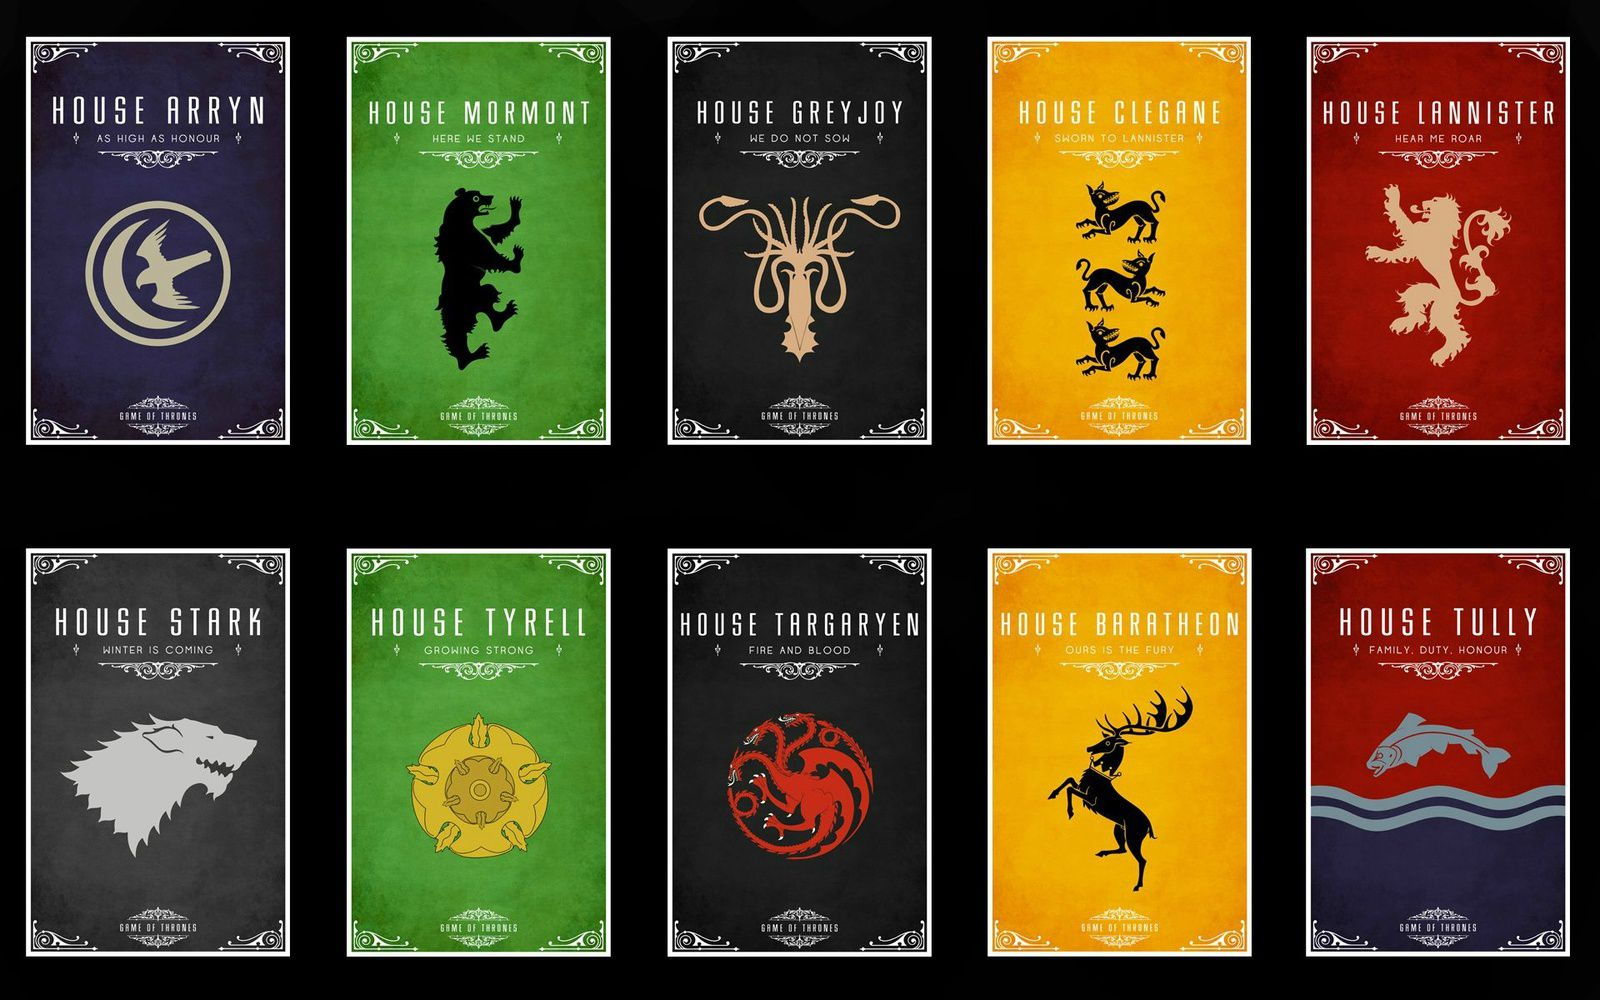 http://covex.over-blog.com/article-le-trone-de-fer-game-of-thrones-118735965.html